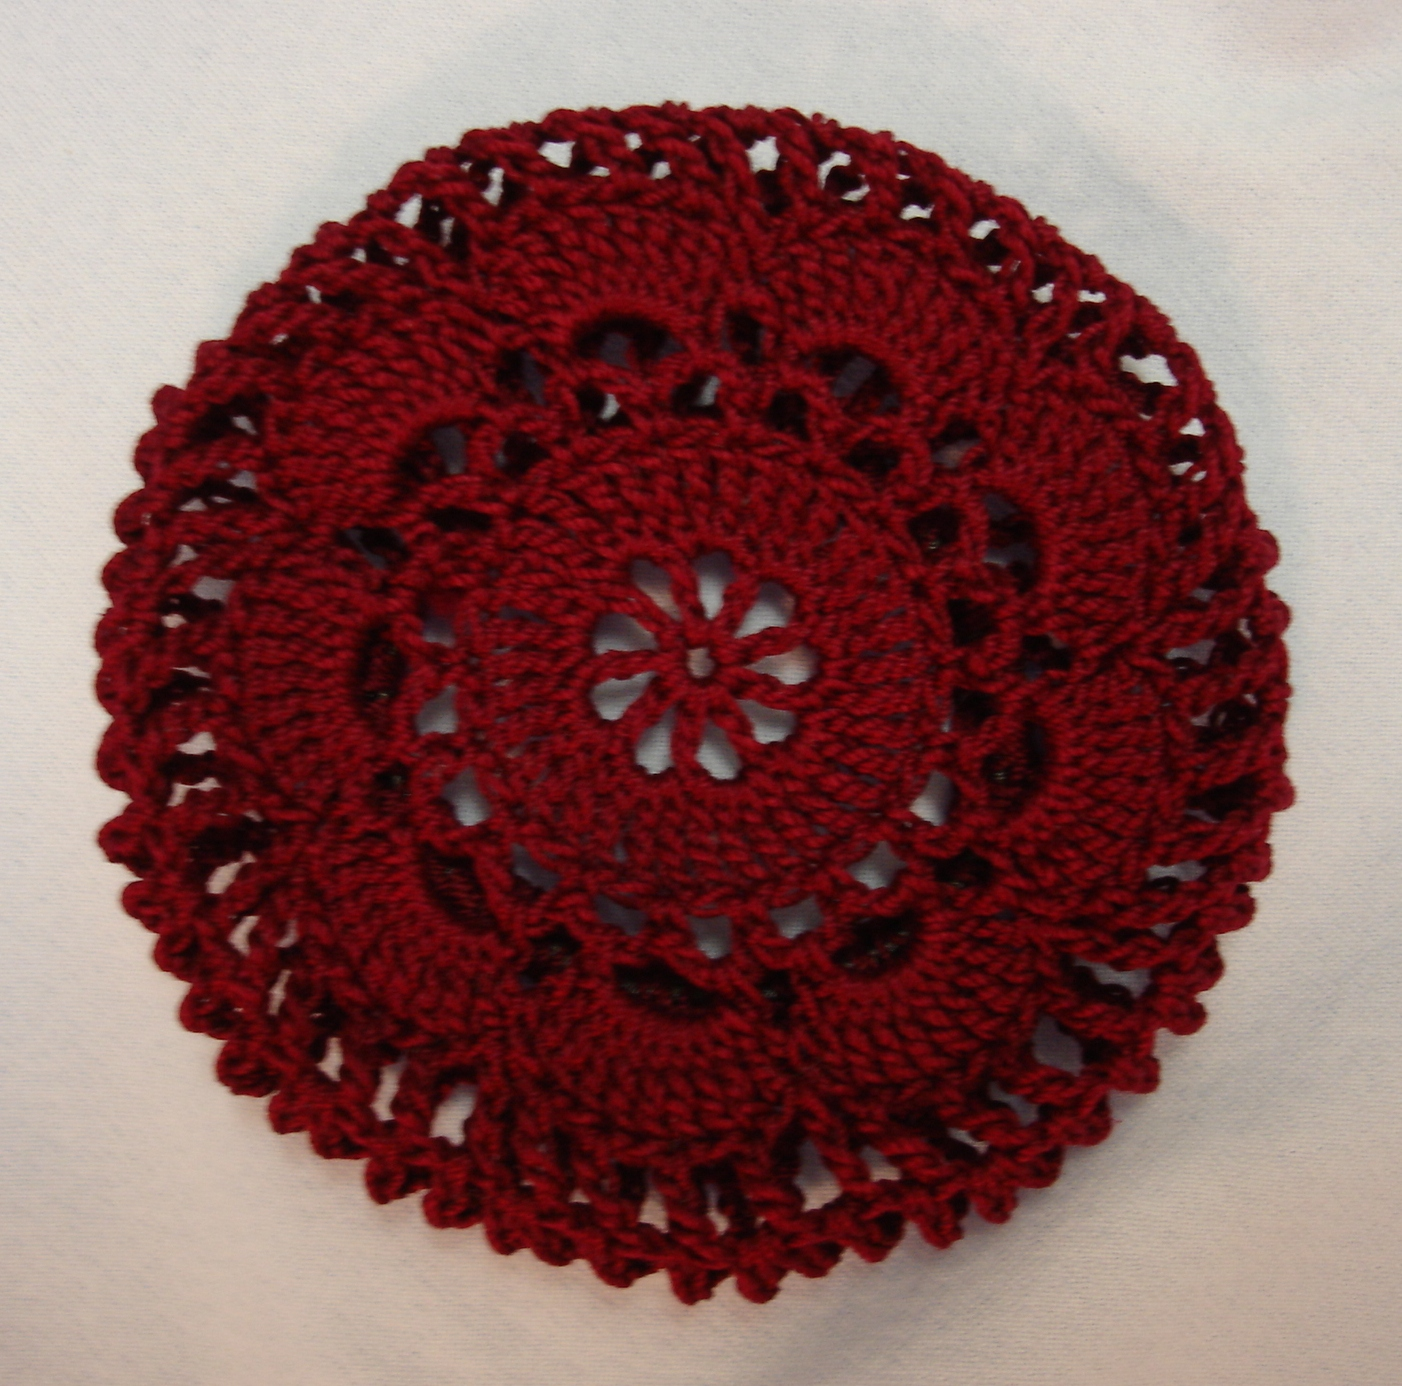 Crochet Hair Net Pattern : Burgundy Crocheted Hair Net Bun Cover Amish Mennonite merrydeals4u